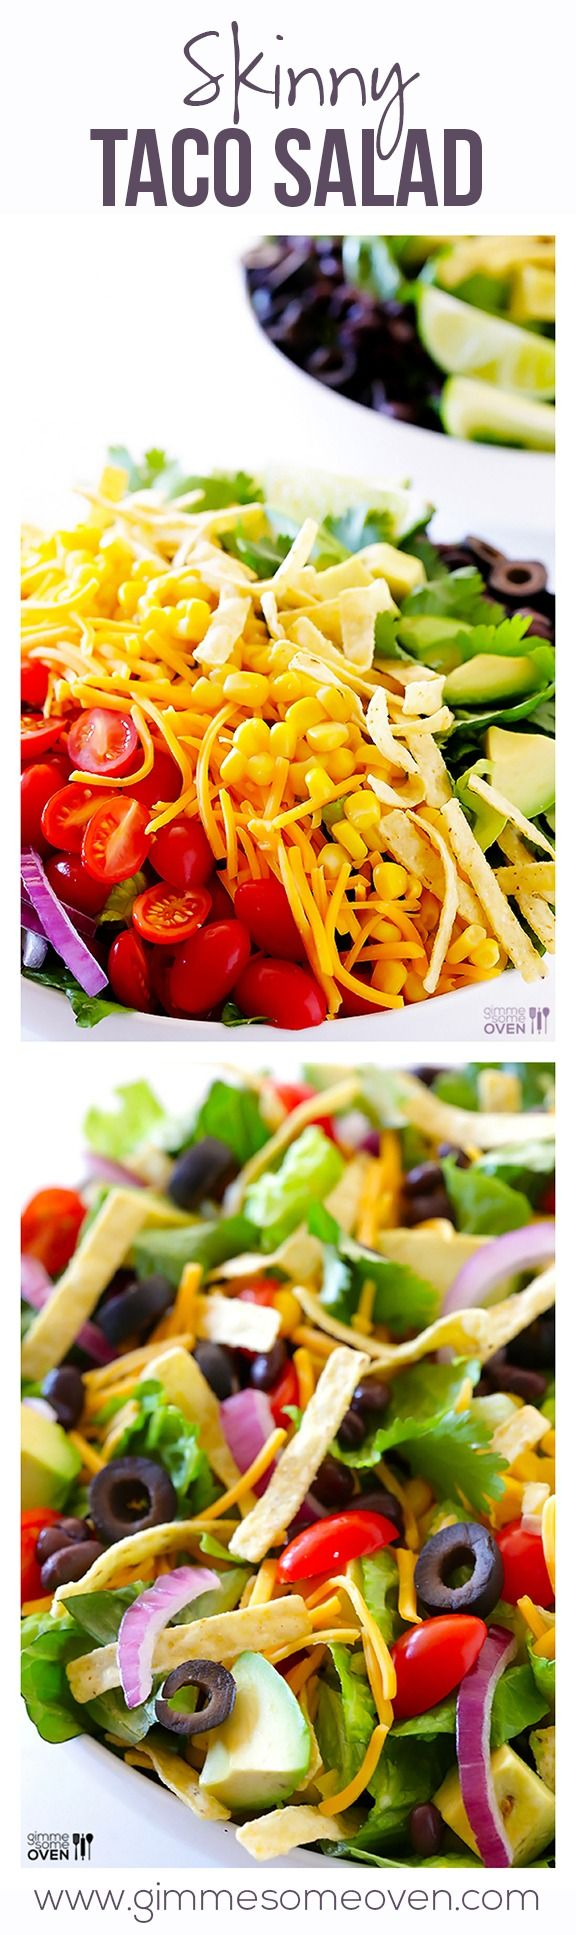 This healthy and delicious salad is super easy to make, and super tasty to enjoy! gimmesomeoven.com #salad #recipe